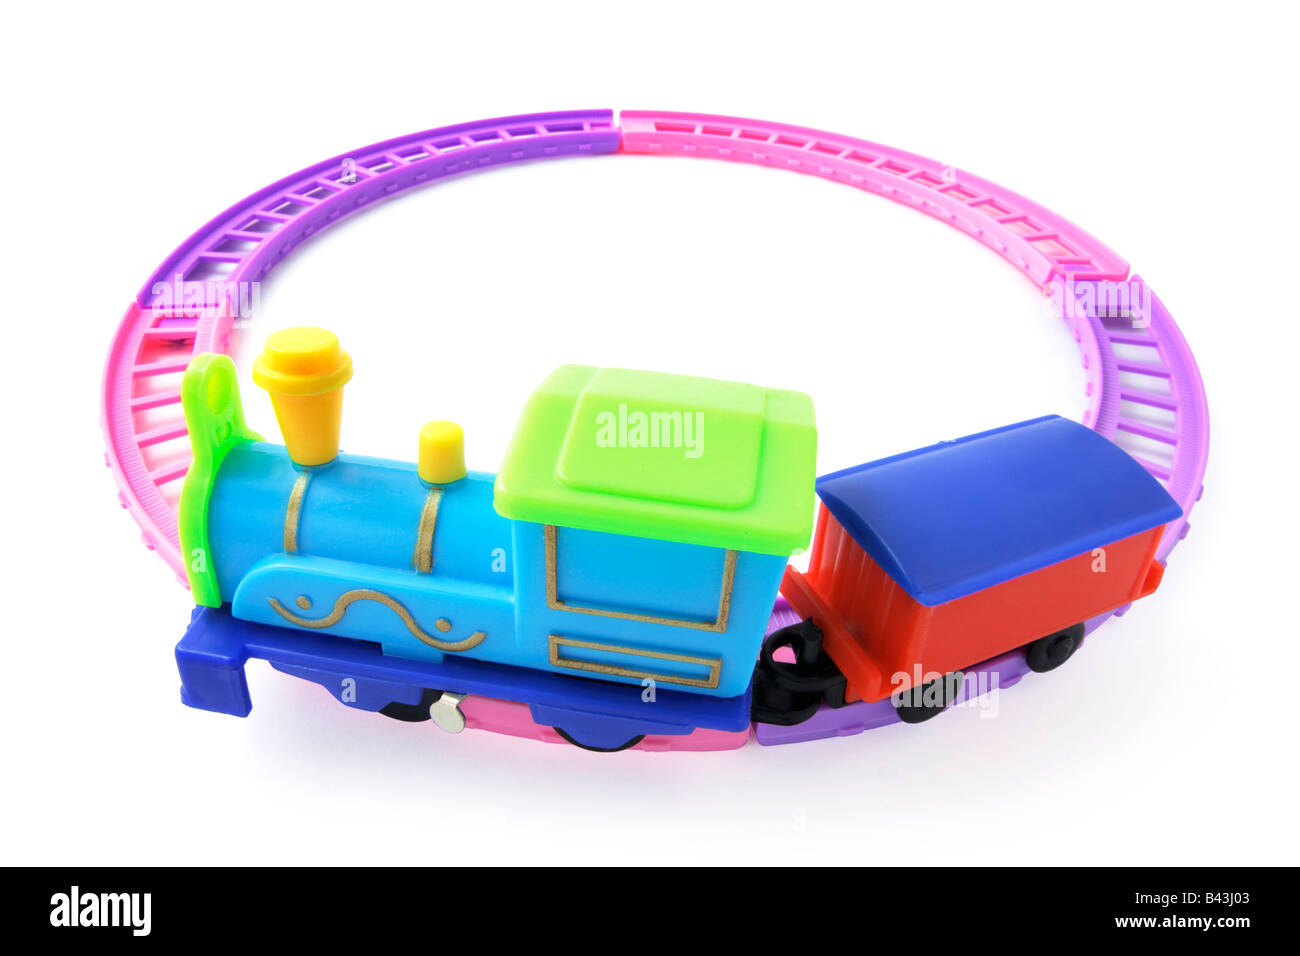 Toy Train on Railway Track - Stock Image